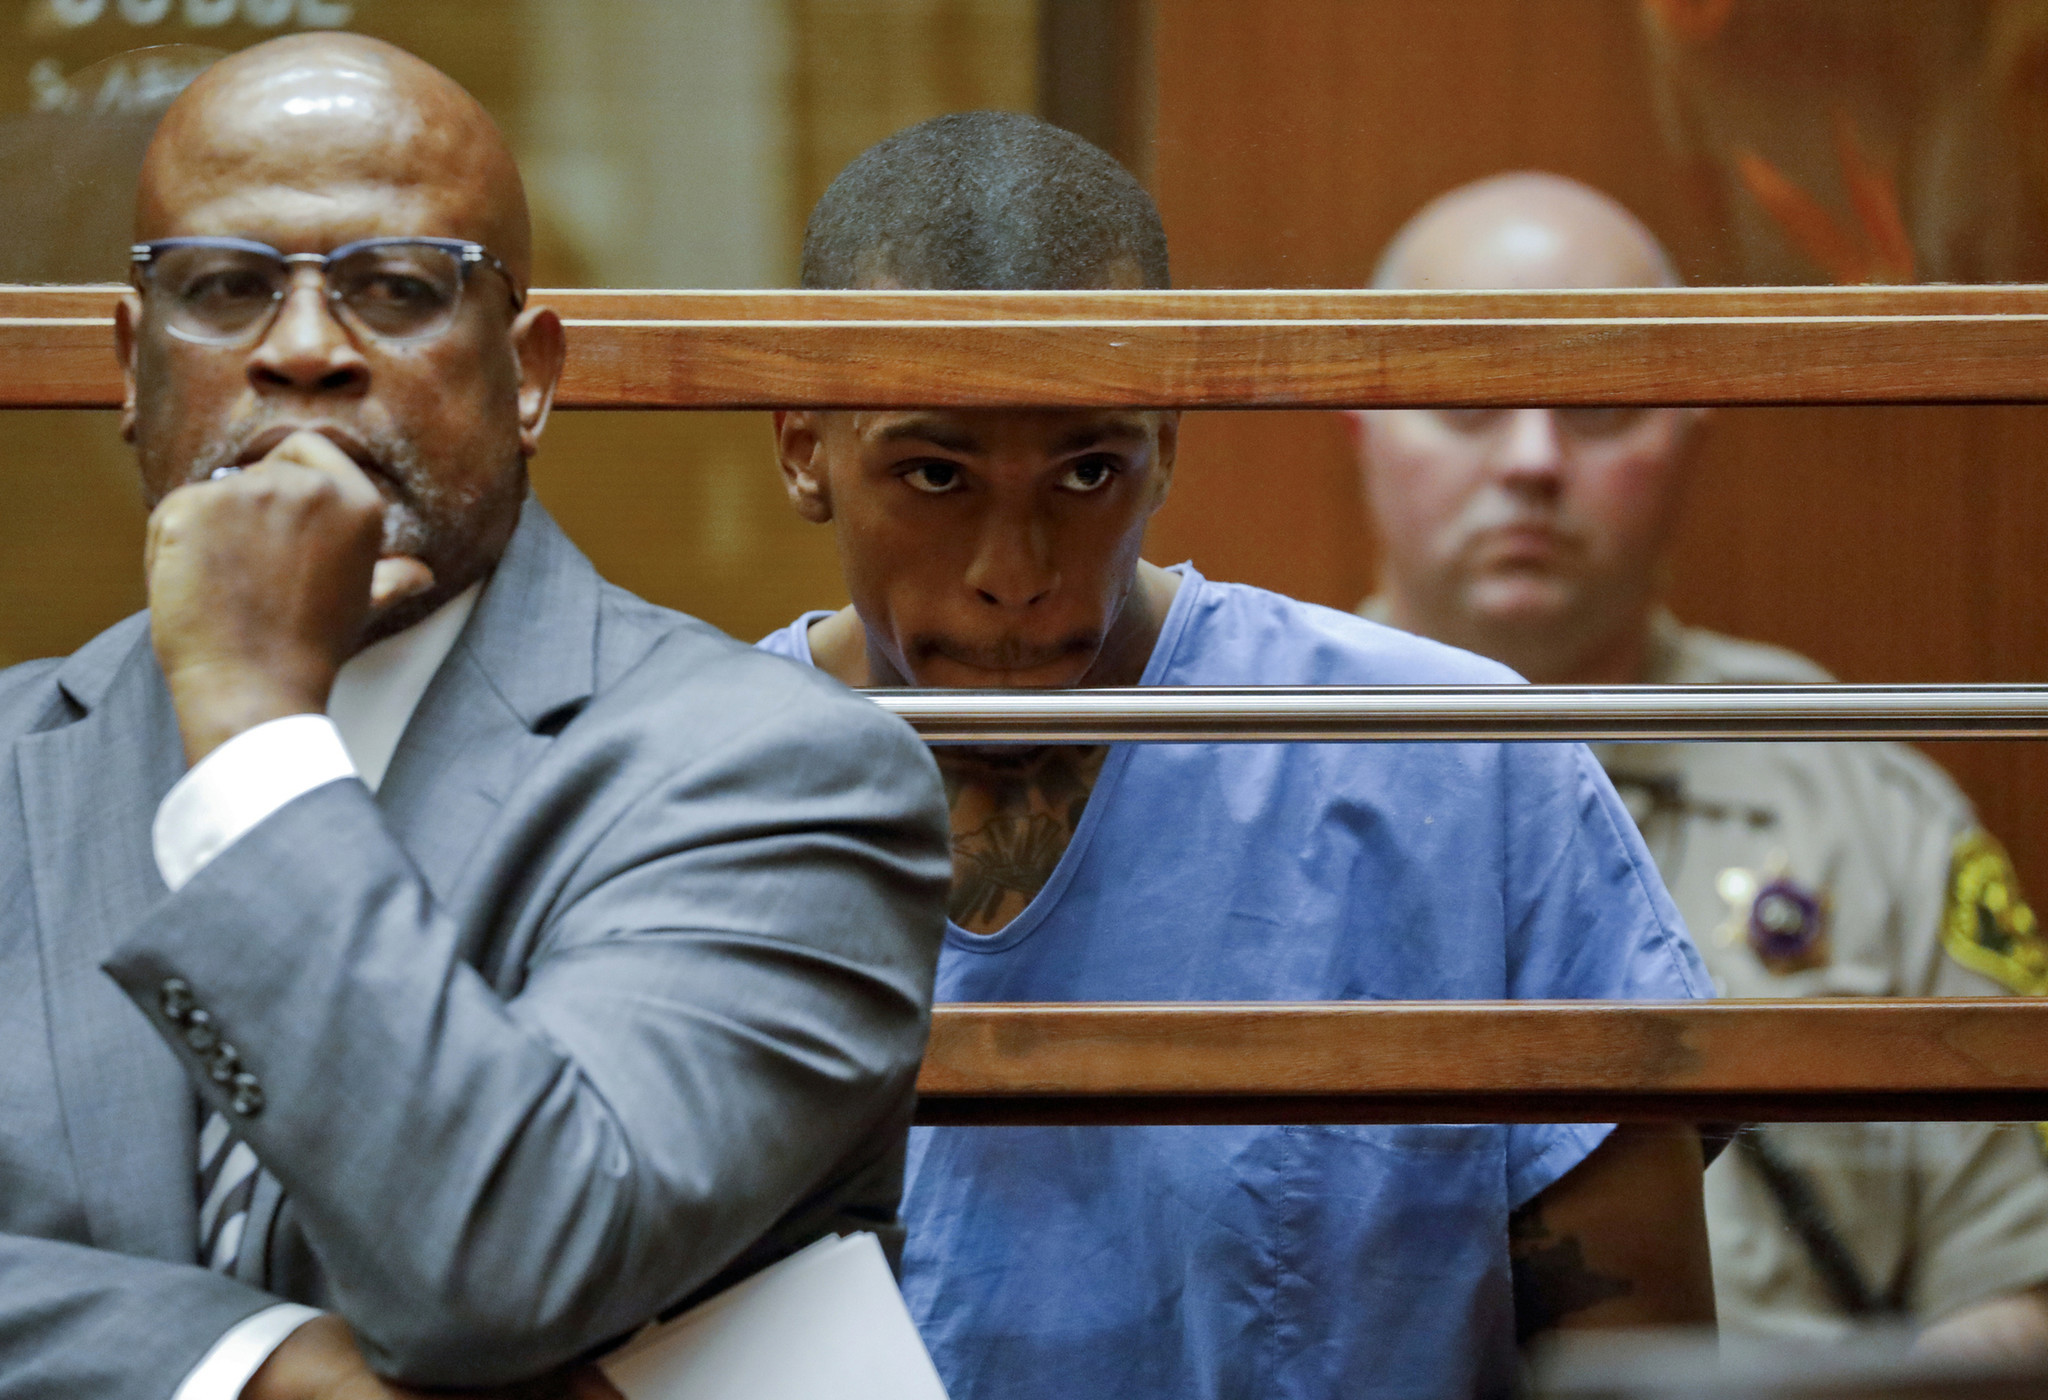 Nipsey Hussle's alleged killer should begin murder trial by early April, judge says